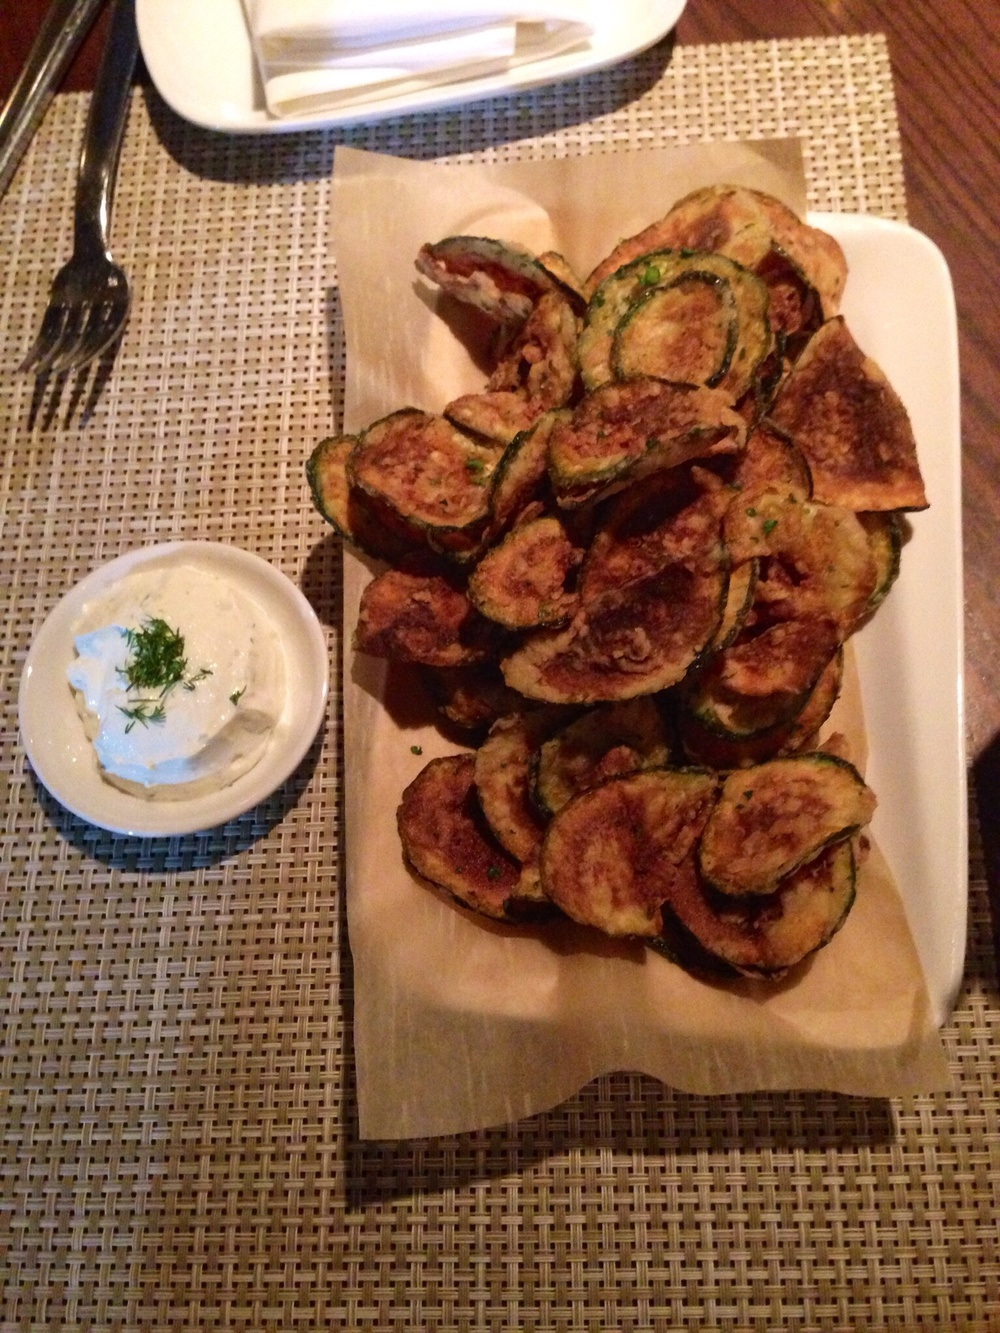 Ilios Noches - Zuchinni + Eggplants Chips